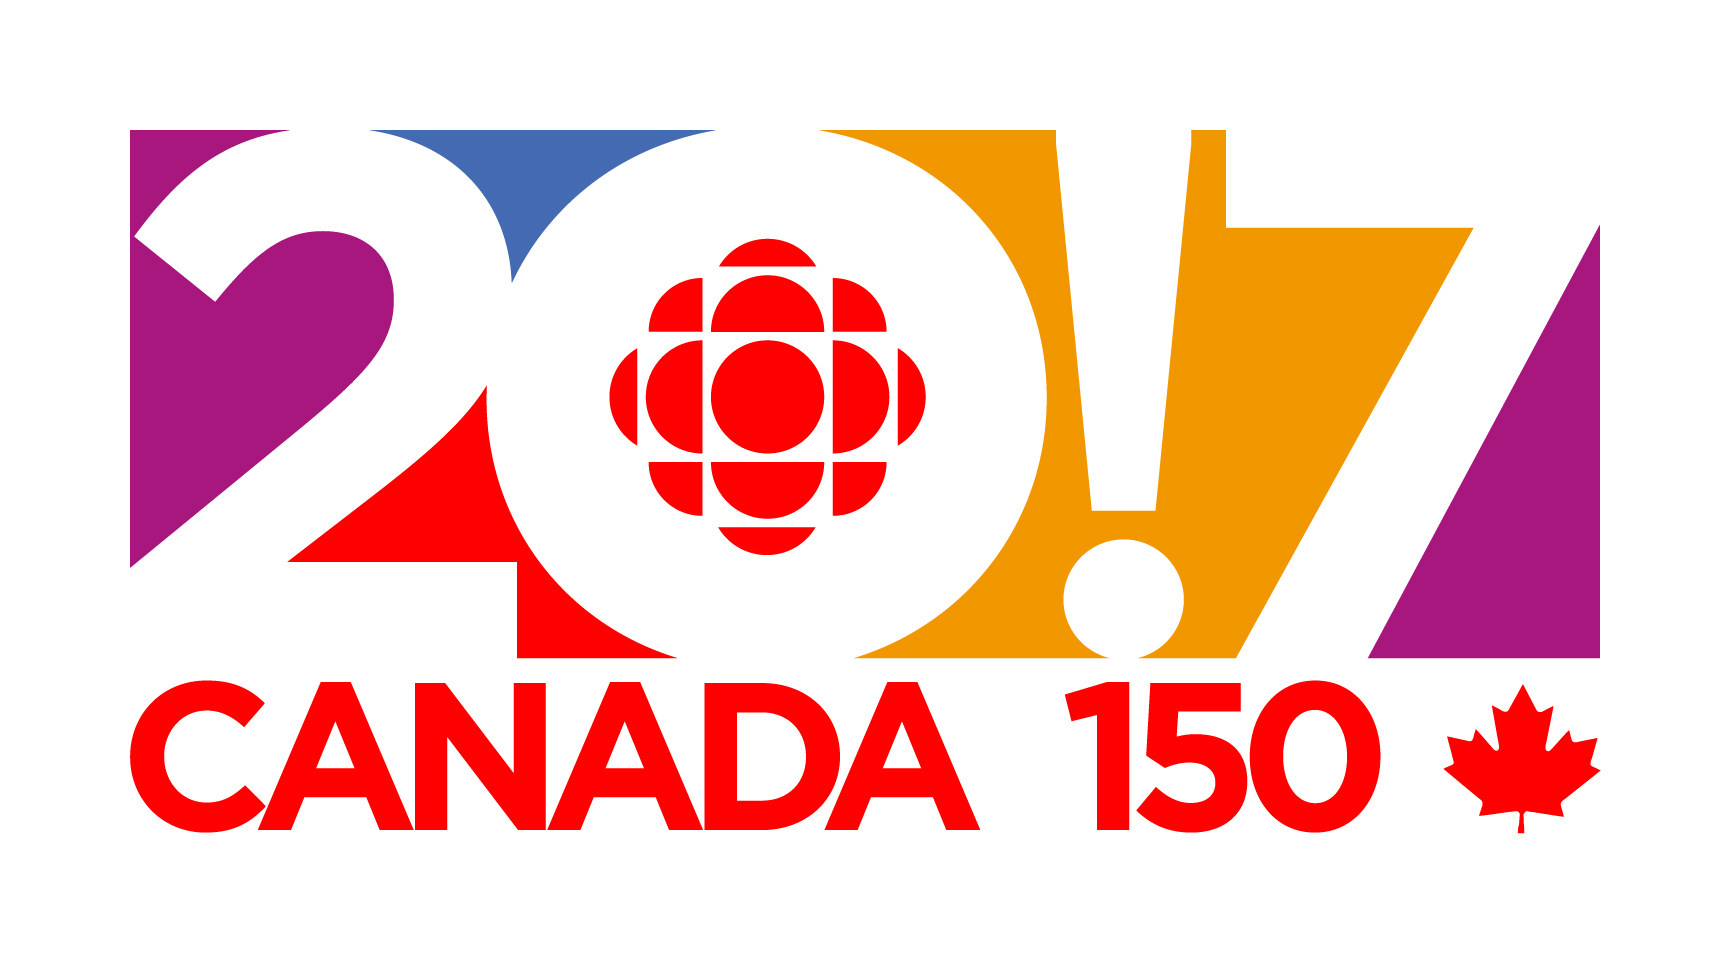 CBC/Radio-Canada's WHAT'S YOUR STORY? – A CANADA 2017 YEARBOOK marks the year by showcasing Canadians' stories